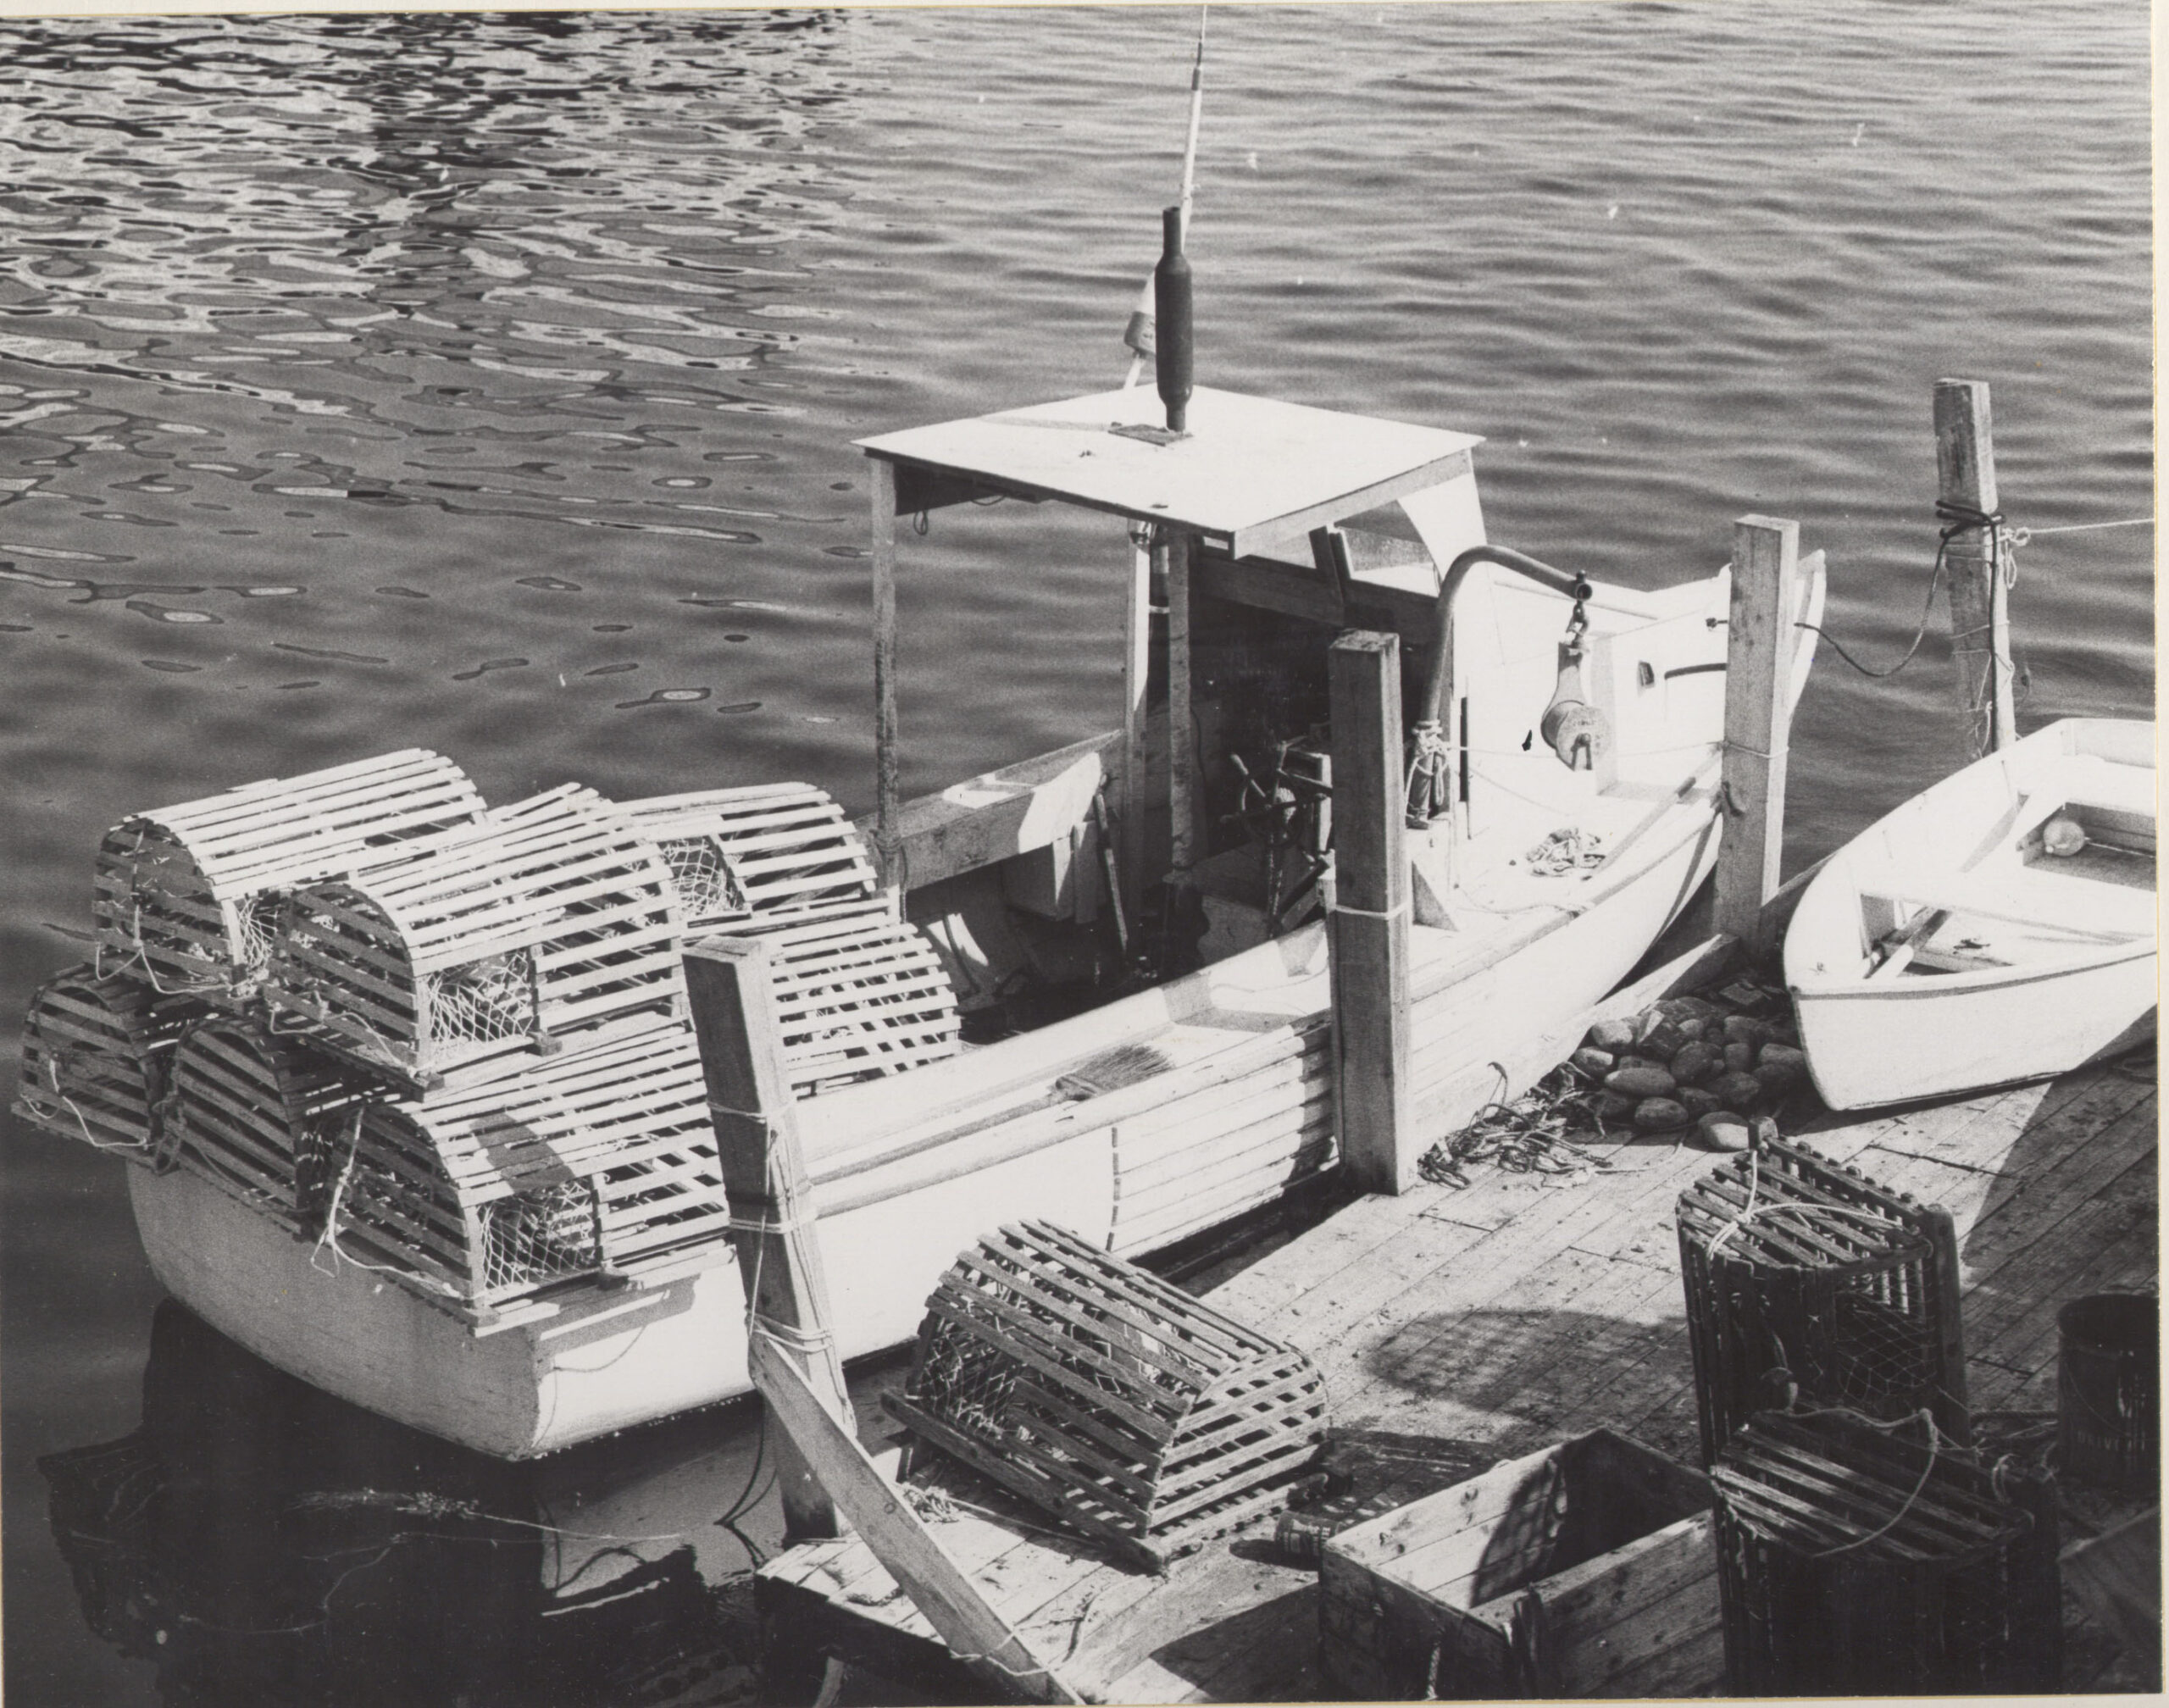 black and white historic photo of a moored lobster boat